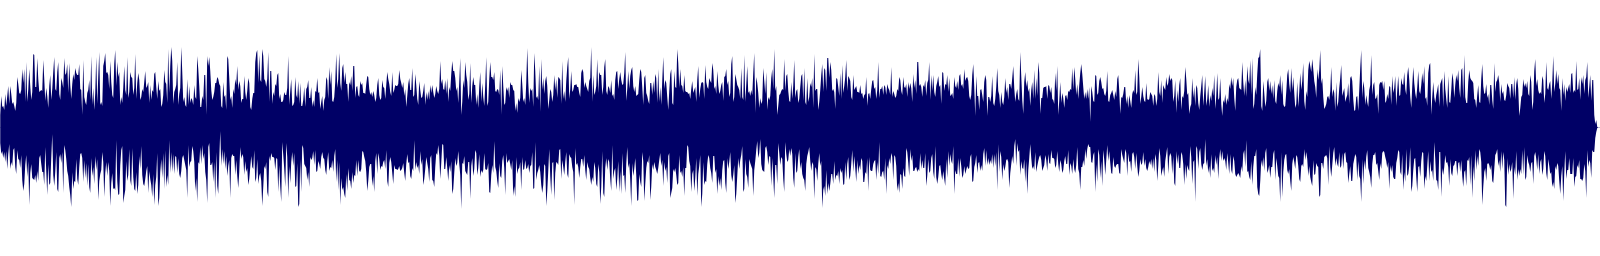 waveform of track #106768